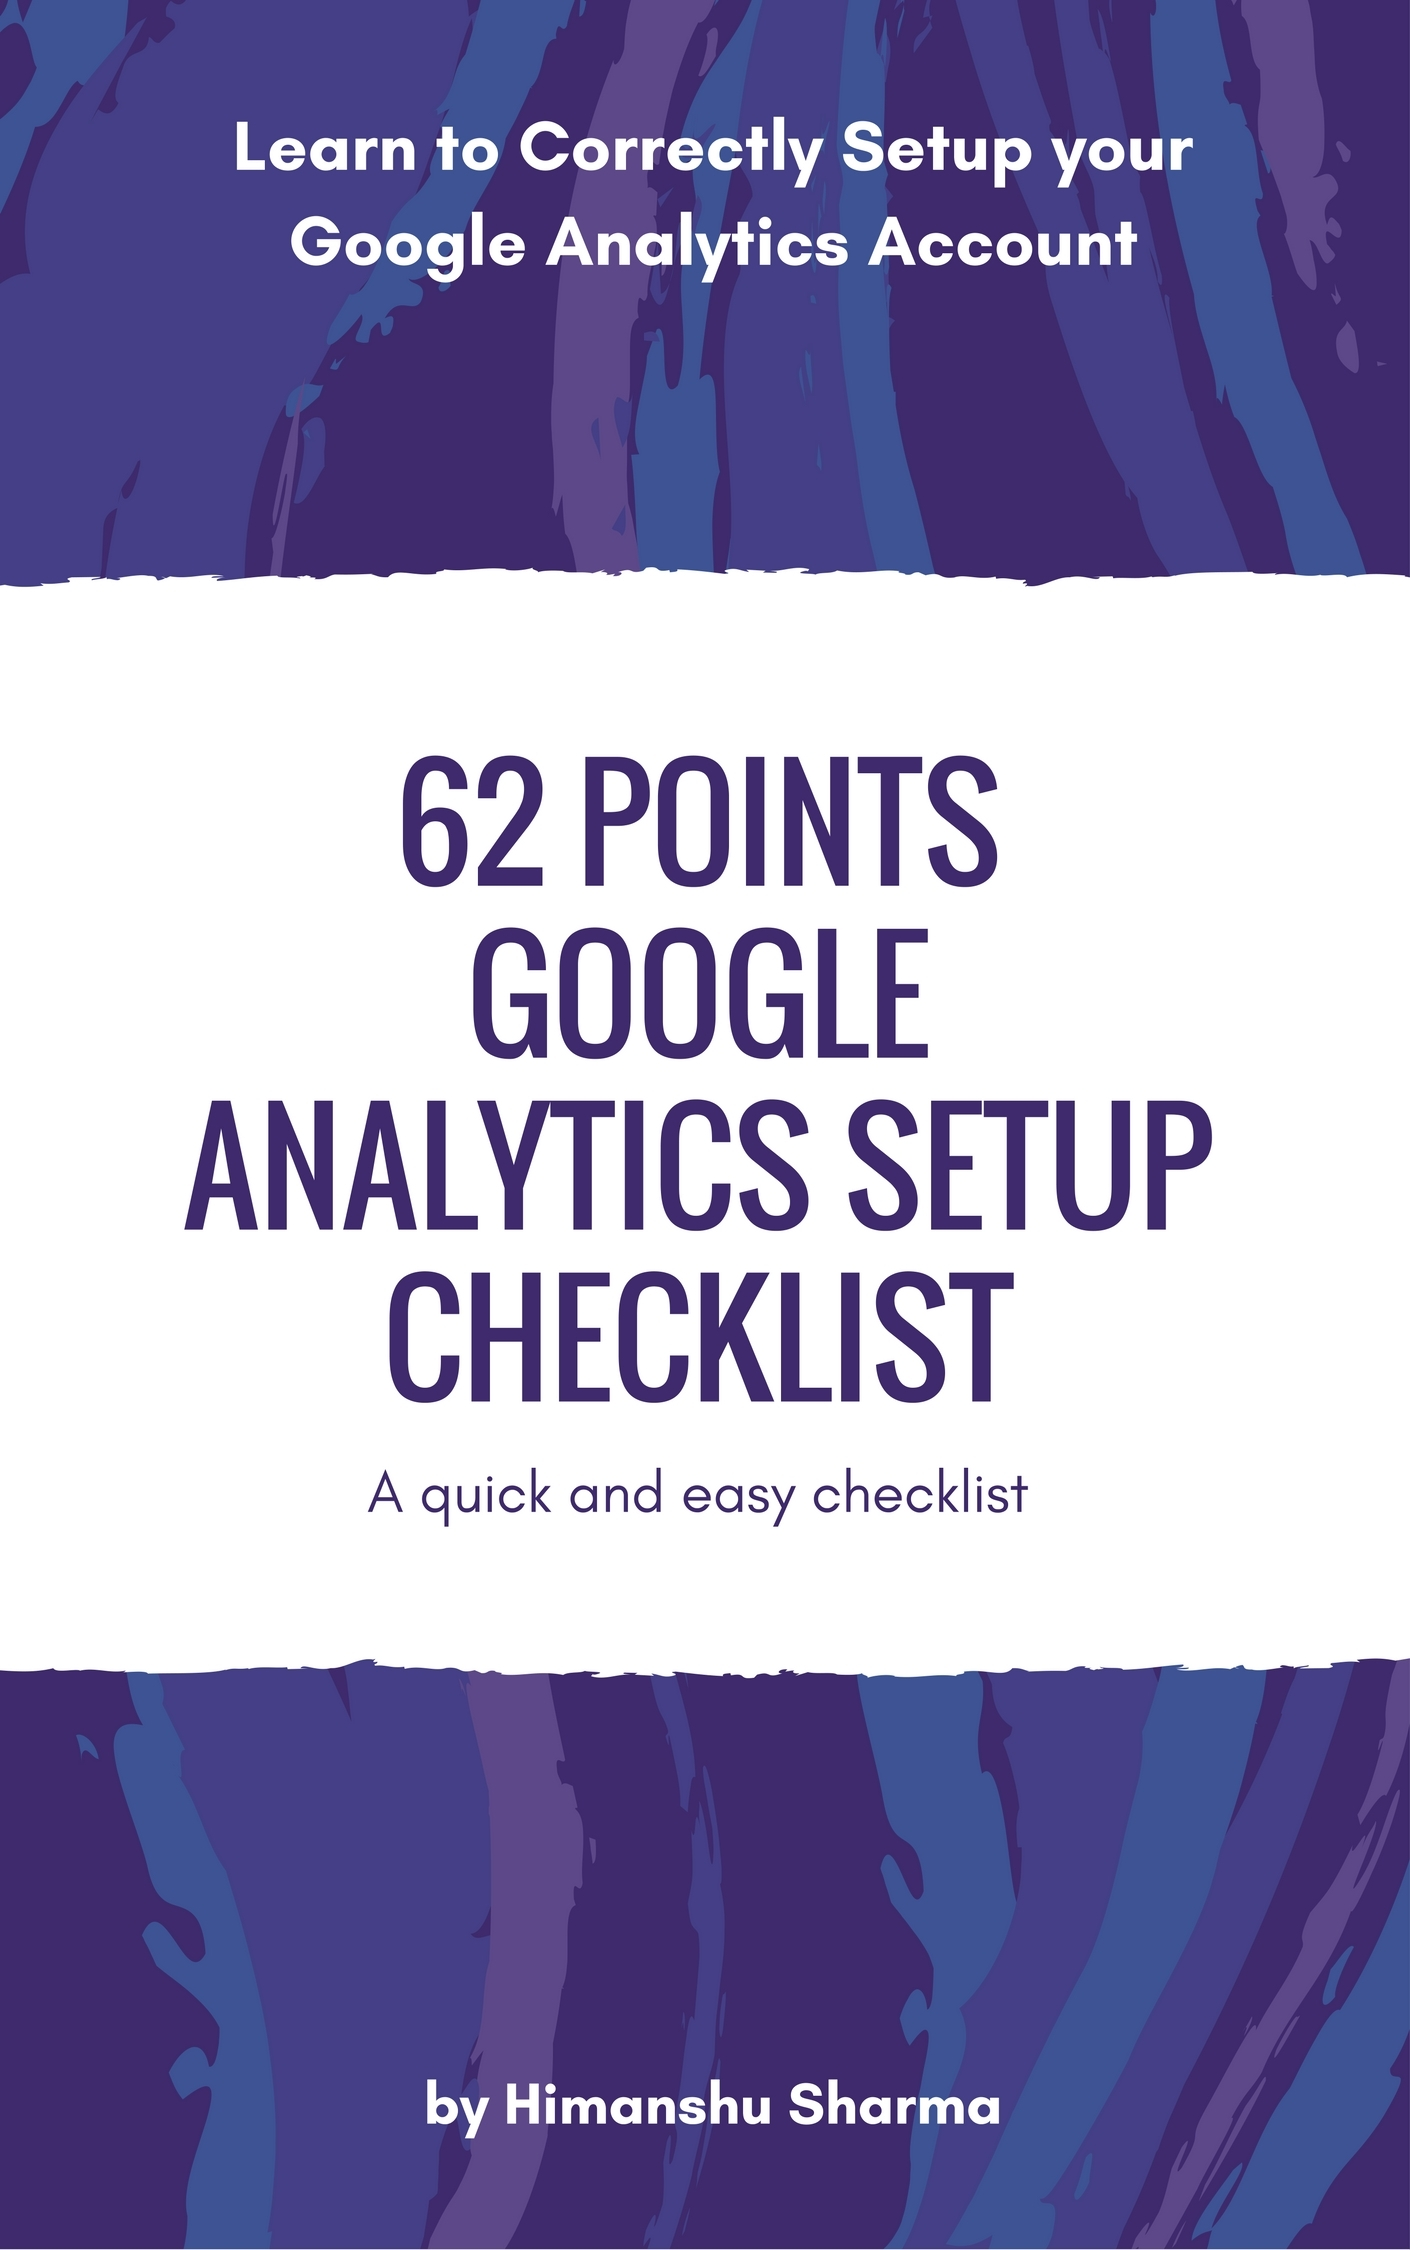 62 Points Google Analytics Setup Checklist